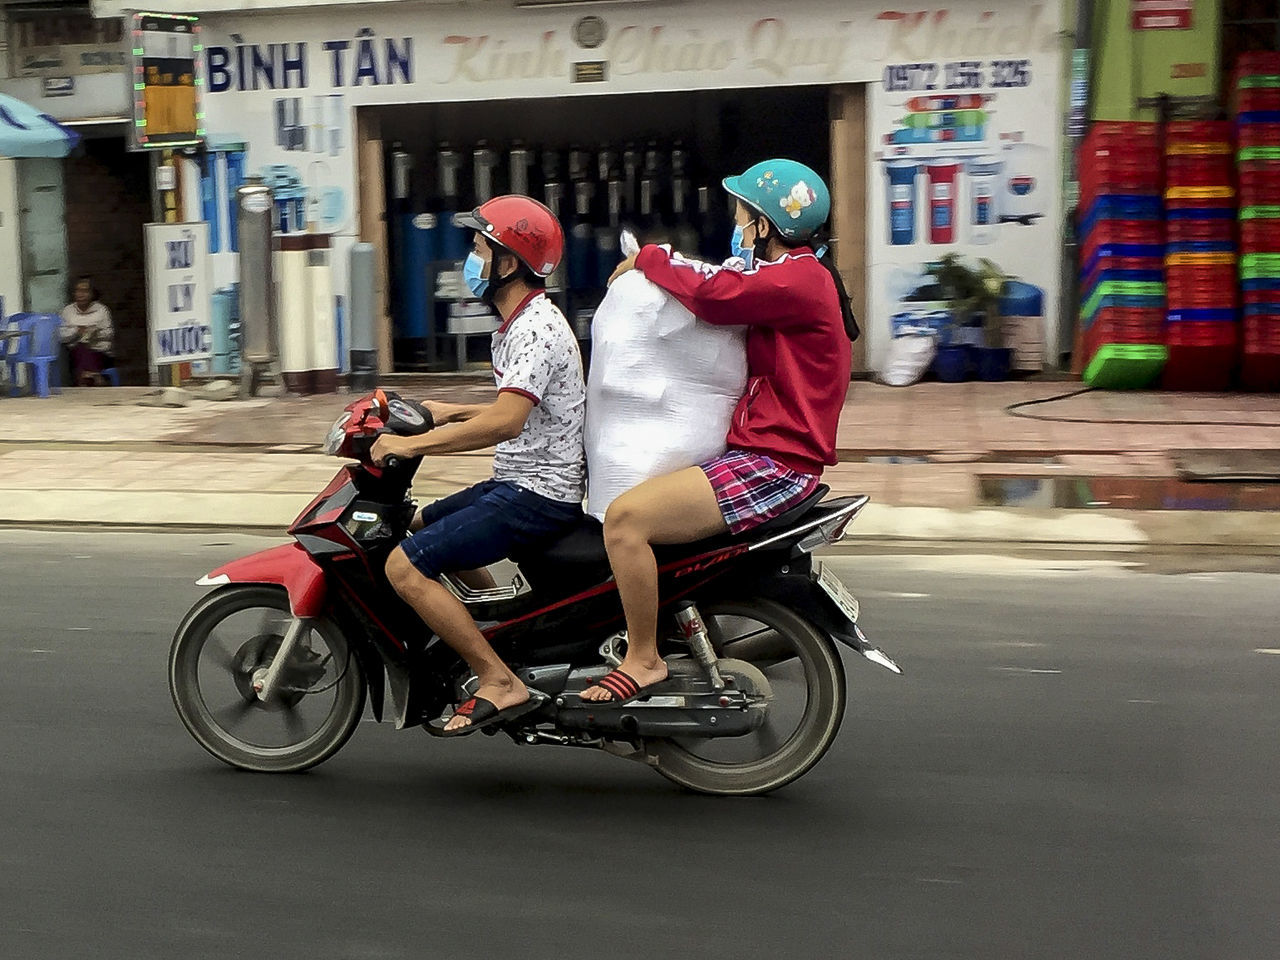 Bicycle Cycling Delivery Service Make A Plan! Overload People Transportation Trickortreat Vietanames Vietnam